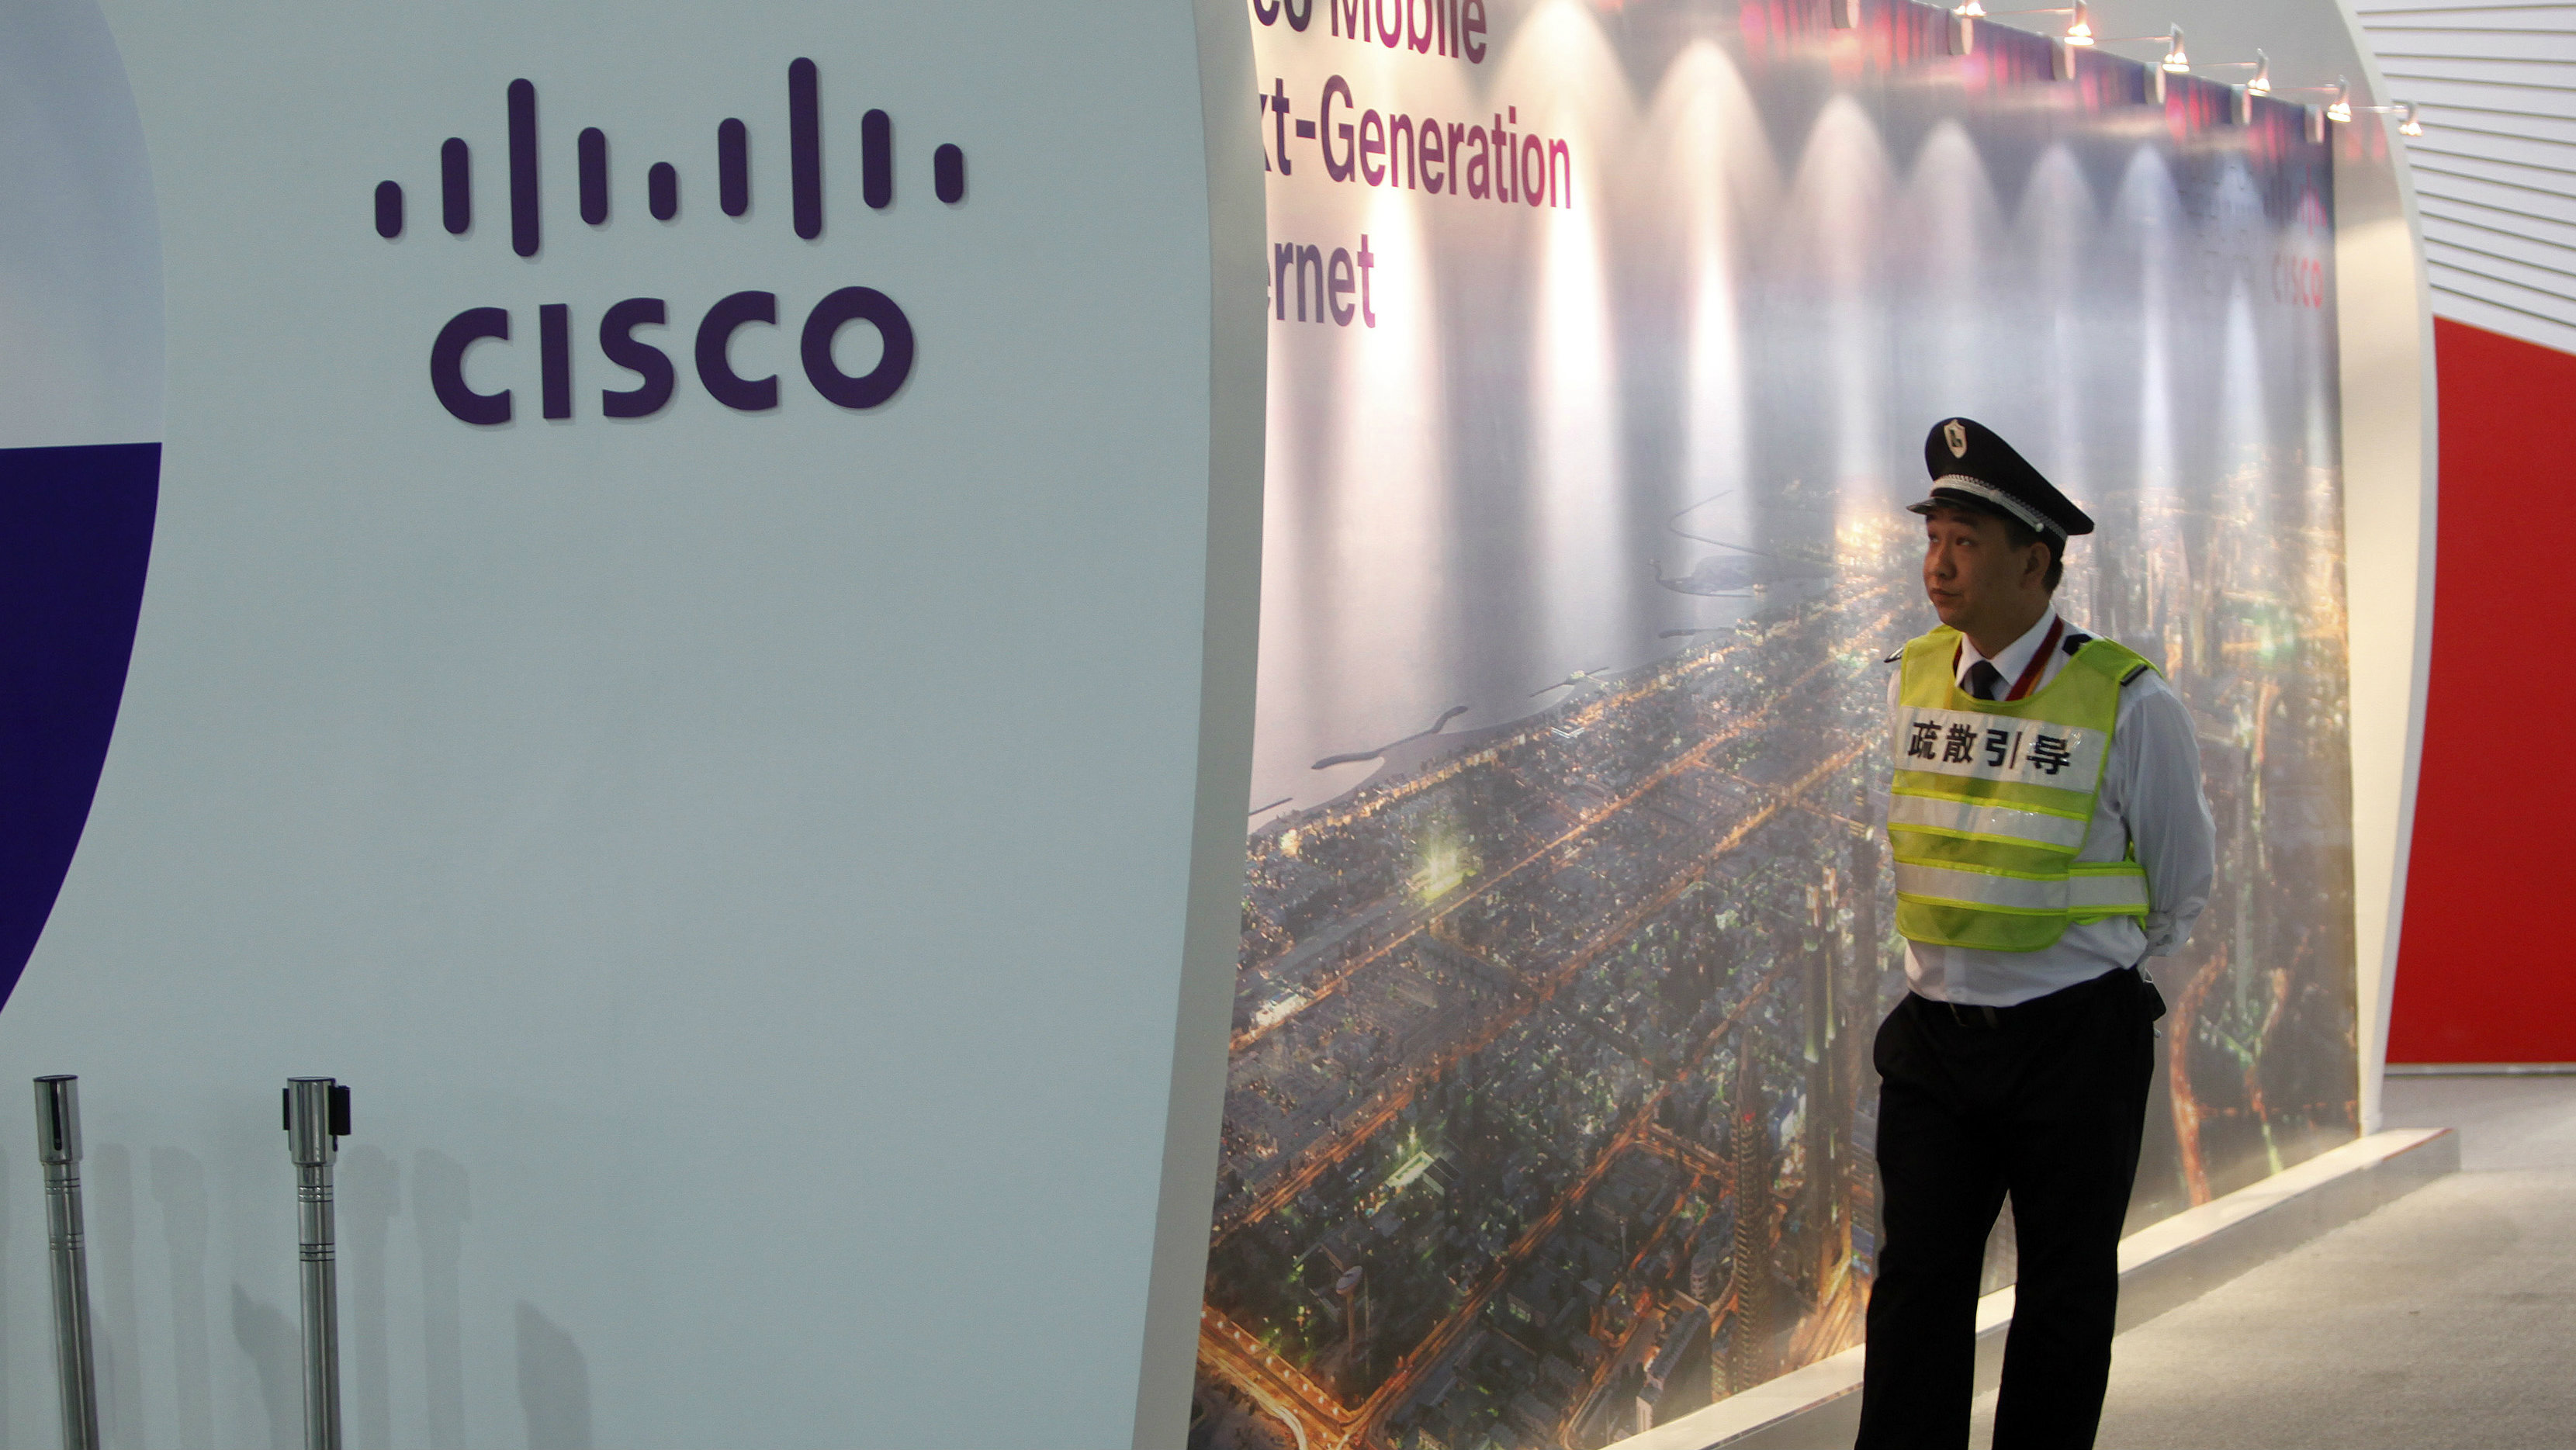 A security guard walks past a Cisco display at the Mobile Asia Expo in Shanghai June 20, 2012. The three-day exhibition opens for the first time in mainland China, to showcase the latest in mobile technology. REUTERS/Aly Song